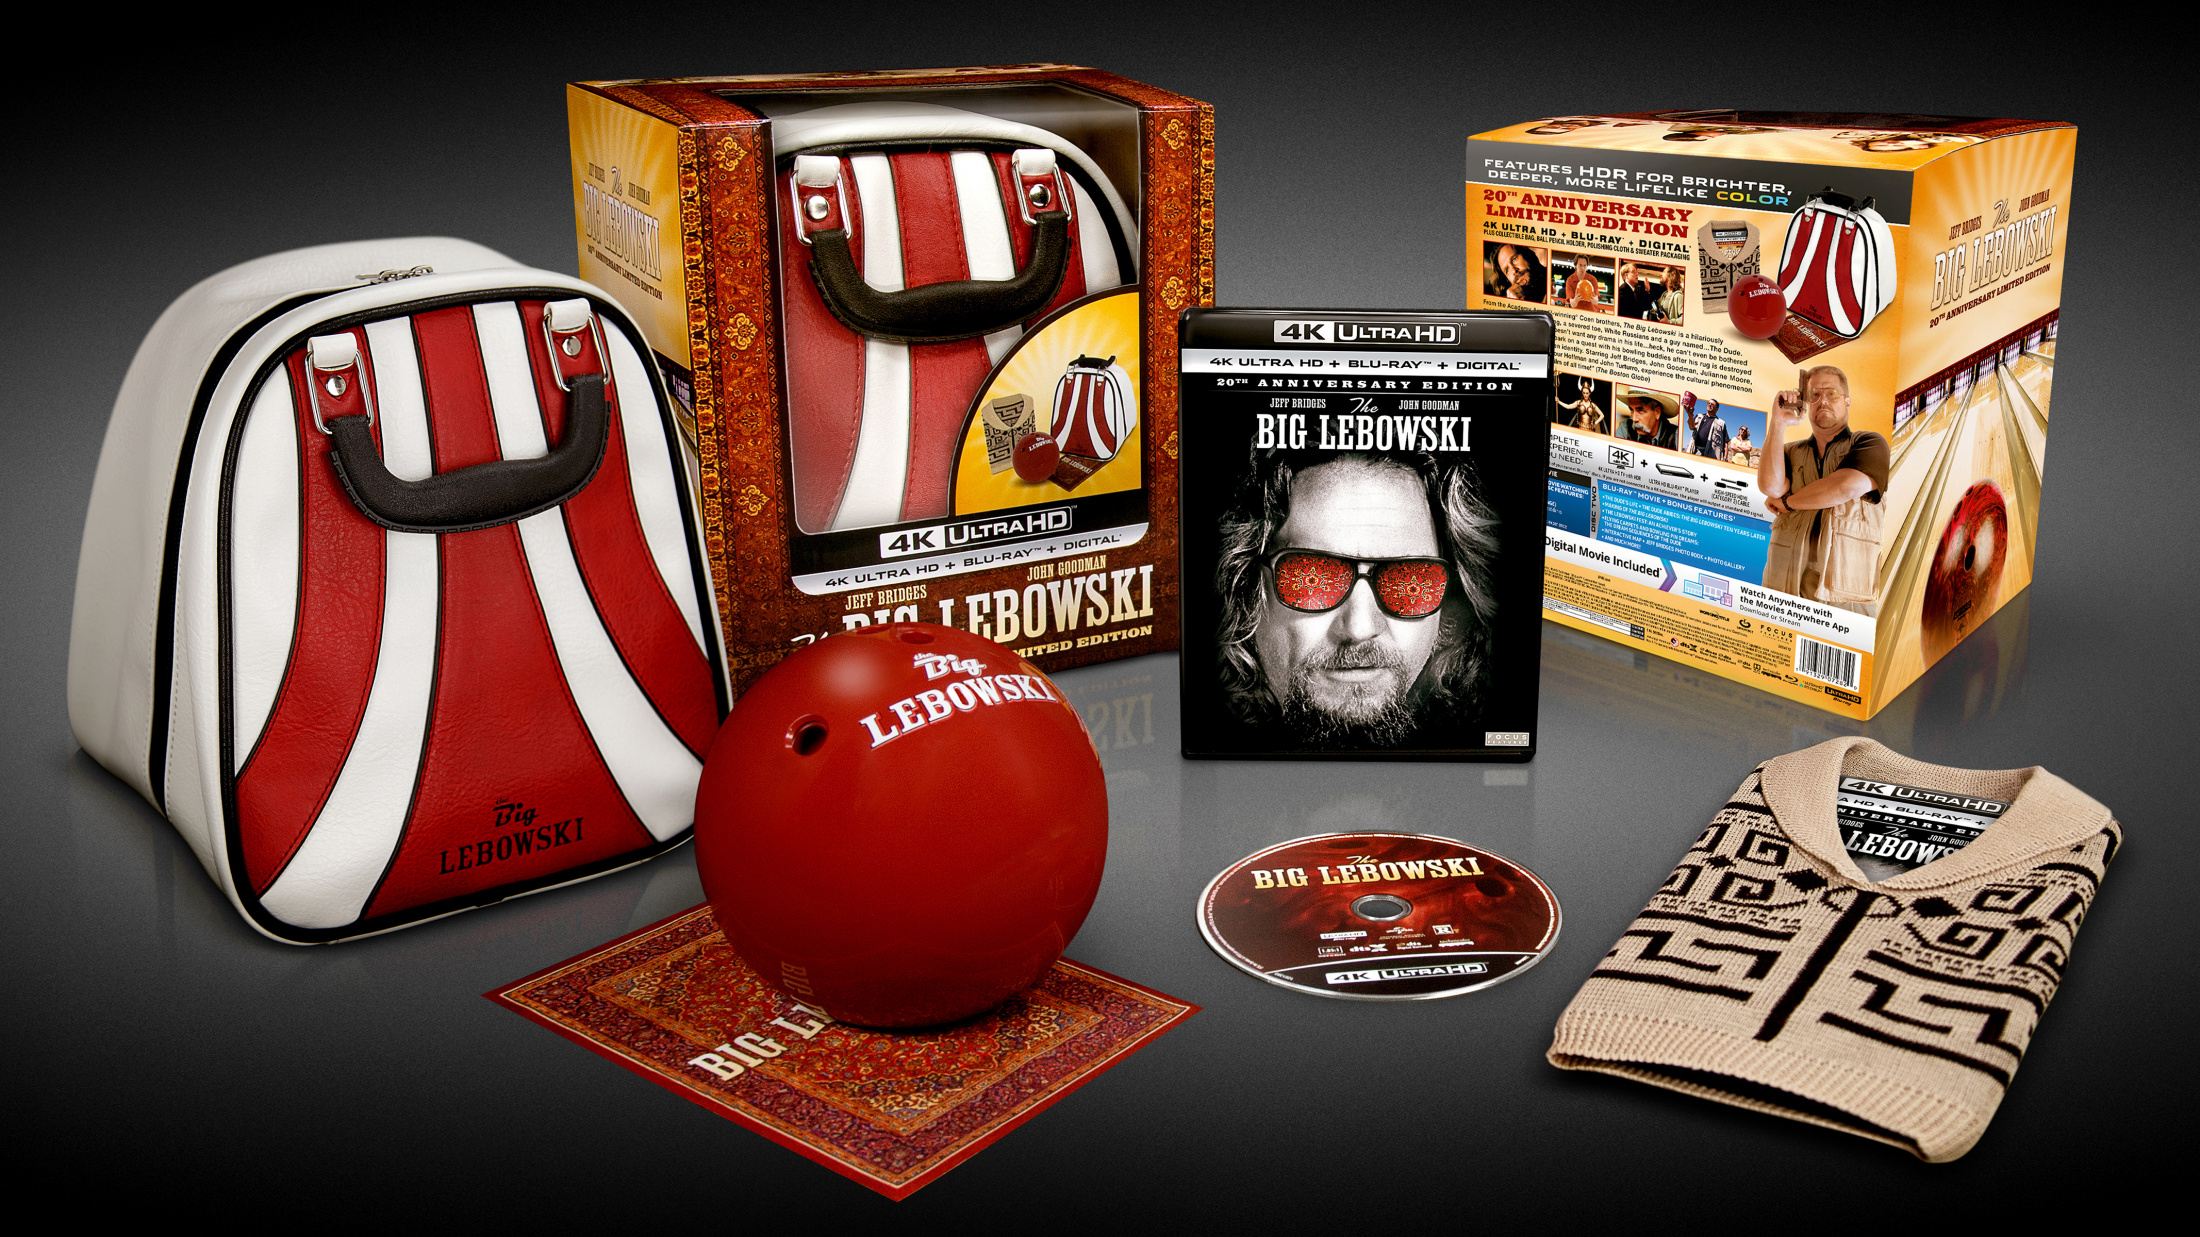 Image Media for The Big Lebowski - 20th Anniversary